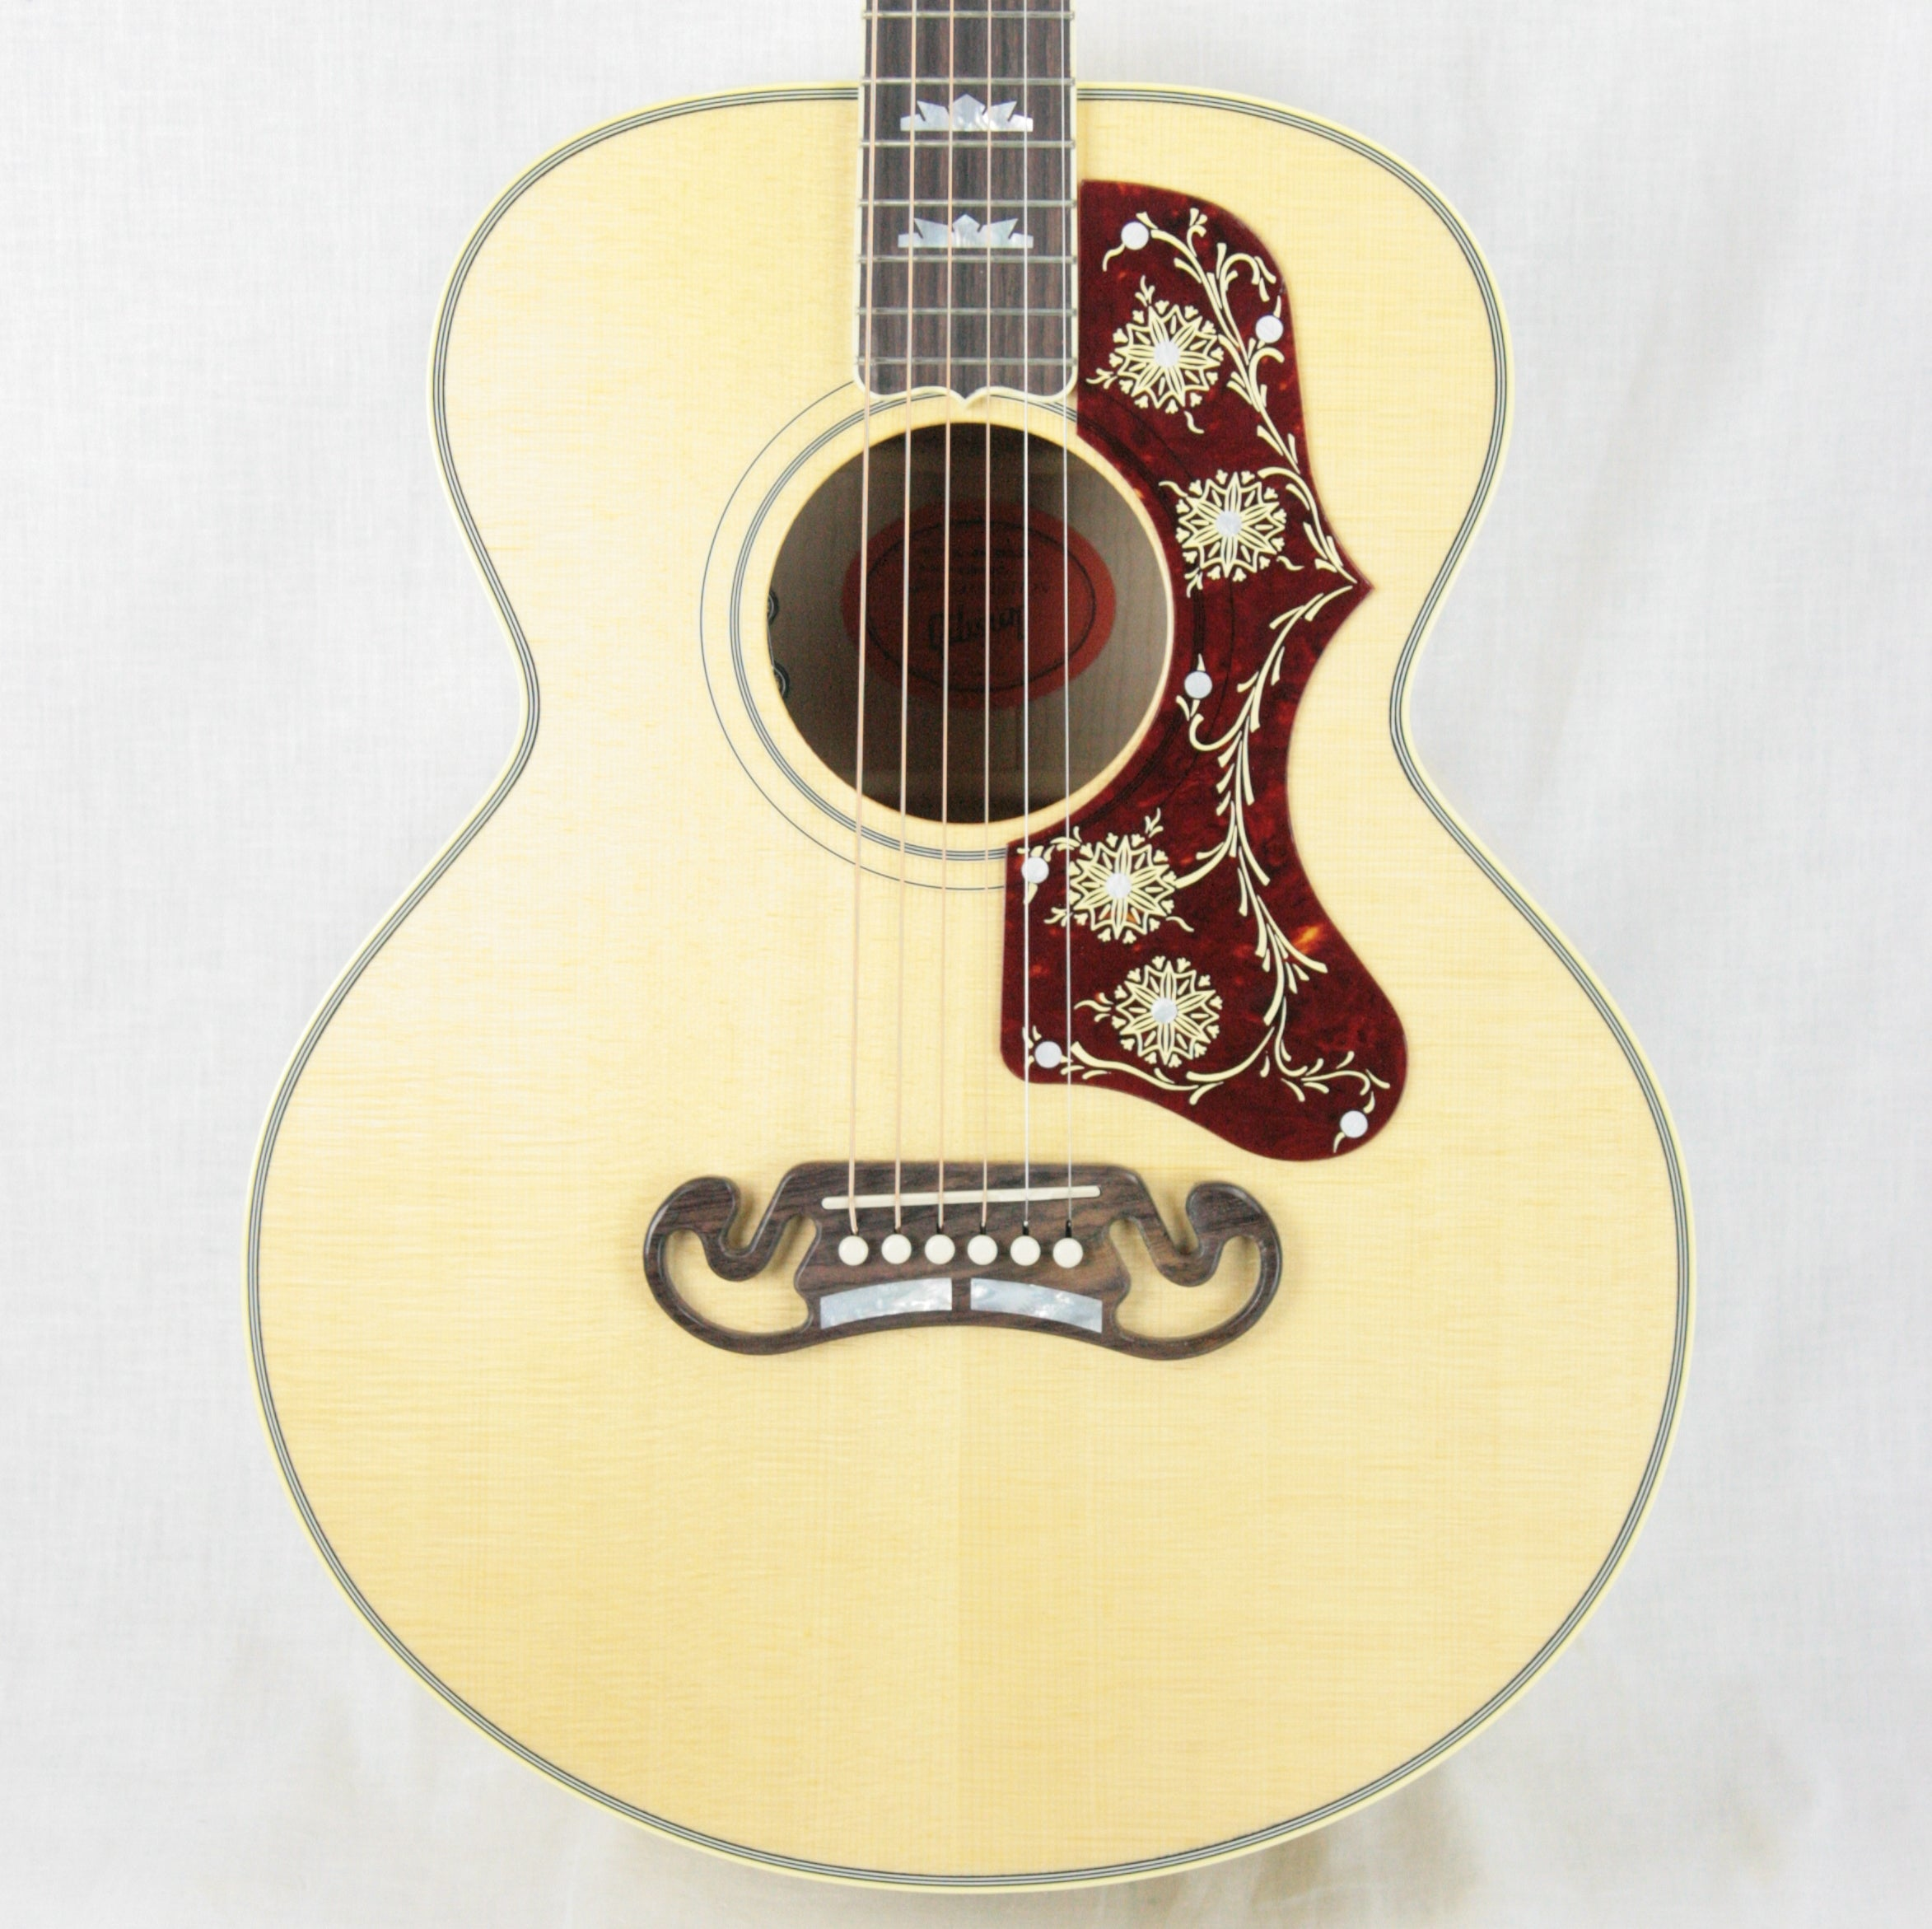 2018 Gibson Custom Shop J-200 Parlor! Limited Edition Acoustic Guitar! SJ200 Small! Maple Flame